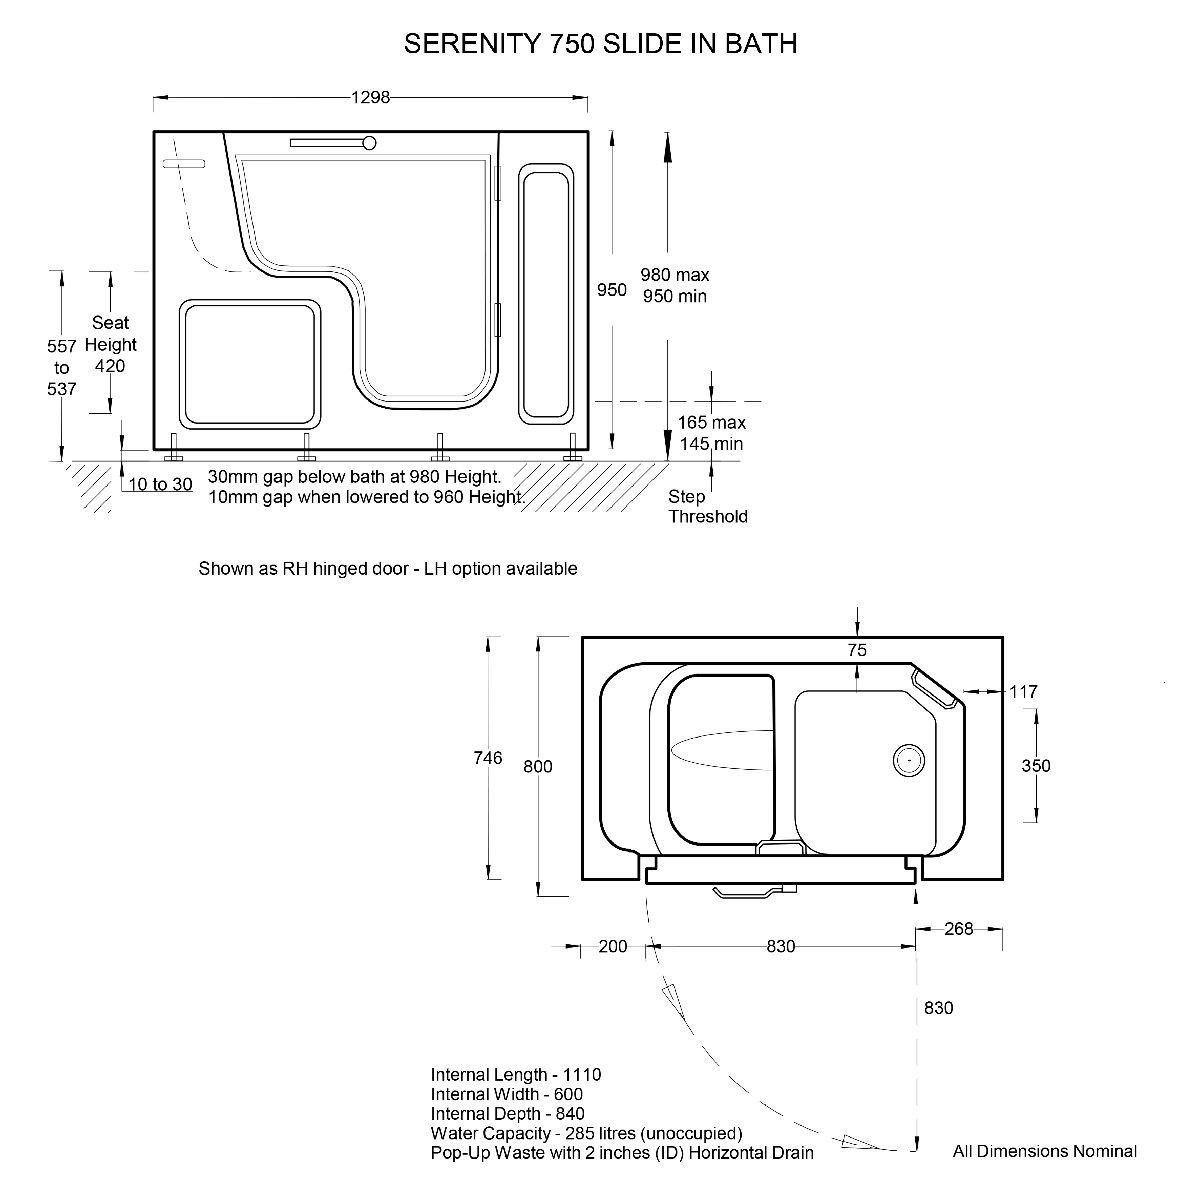 batheeasyserenitywalkinbath1300x750lefthanddimensions